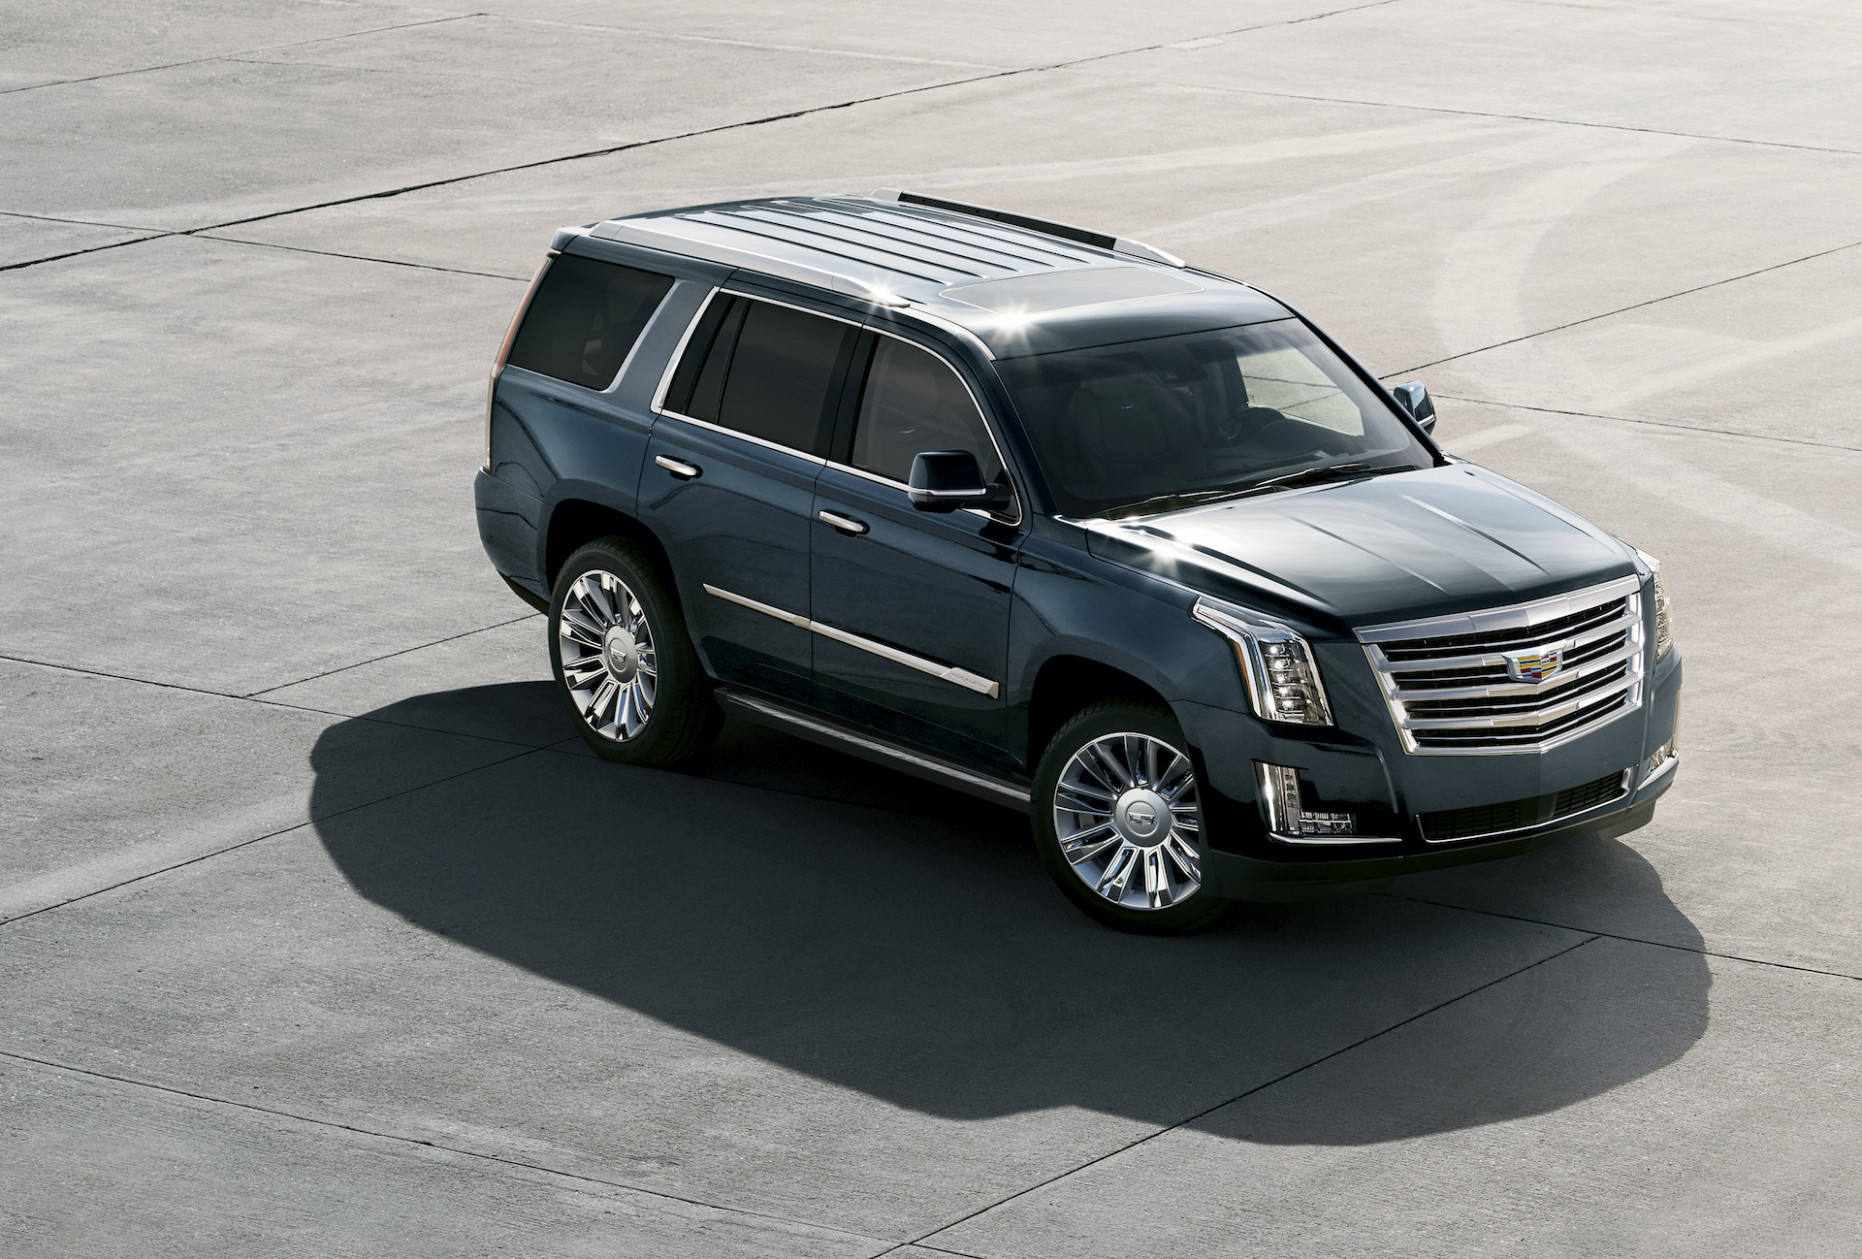 11 Cadillac Escalade Review, Ratings, Specs, Prices, and Photos ..